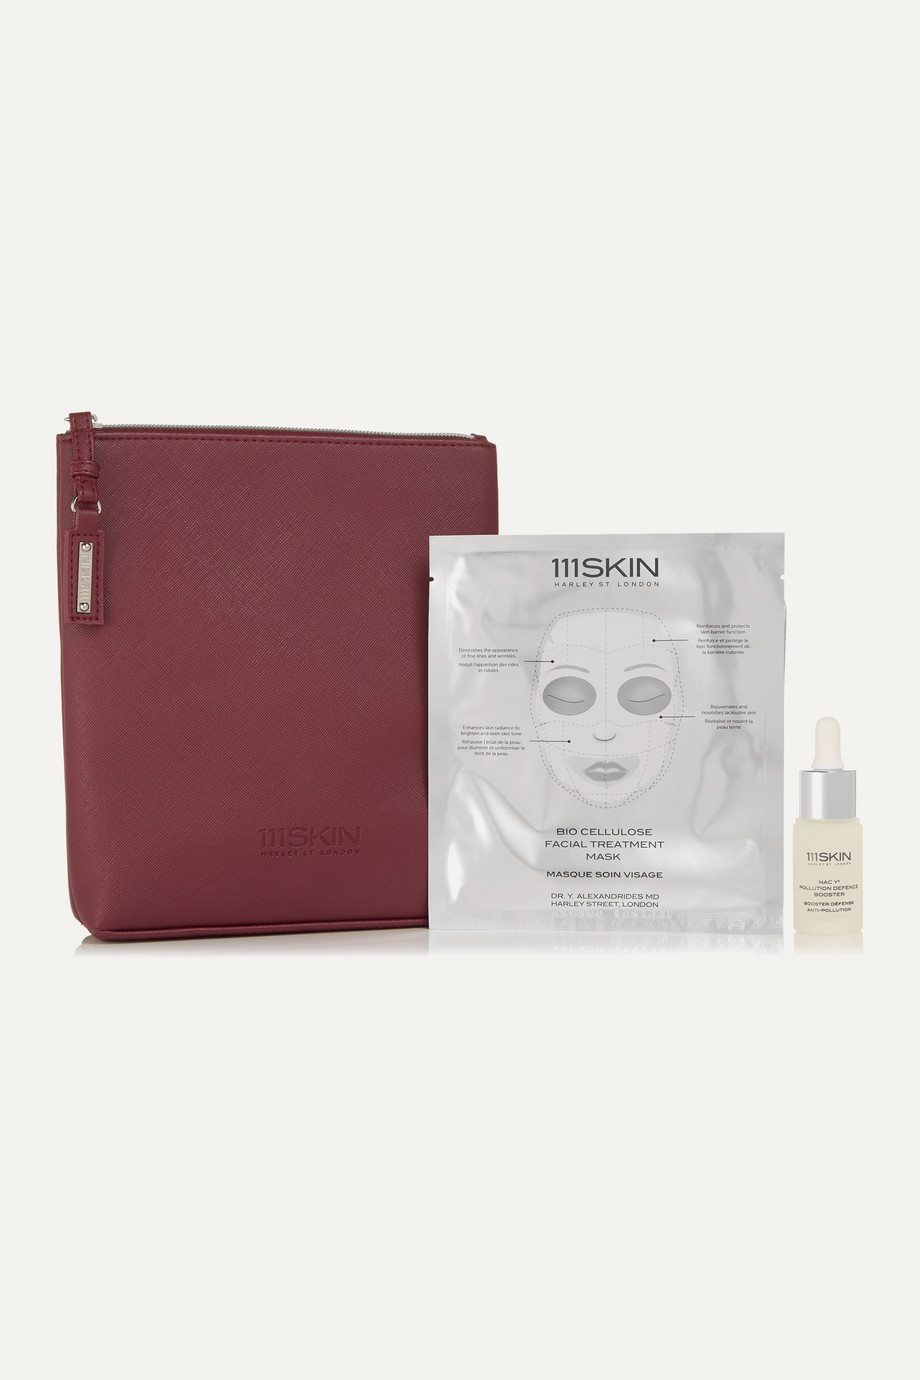 111SKIN The Reparative Kit